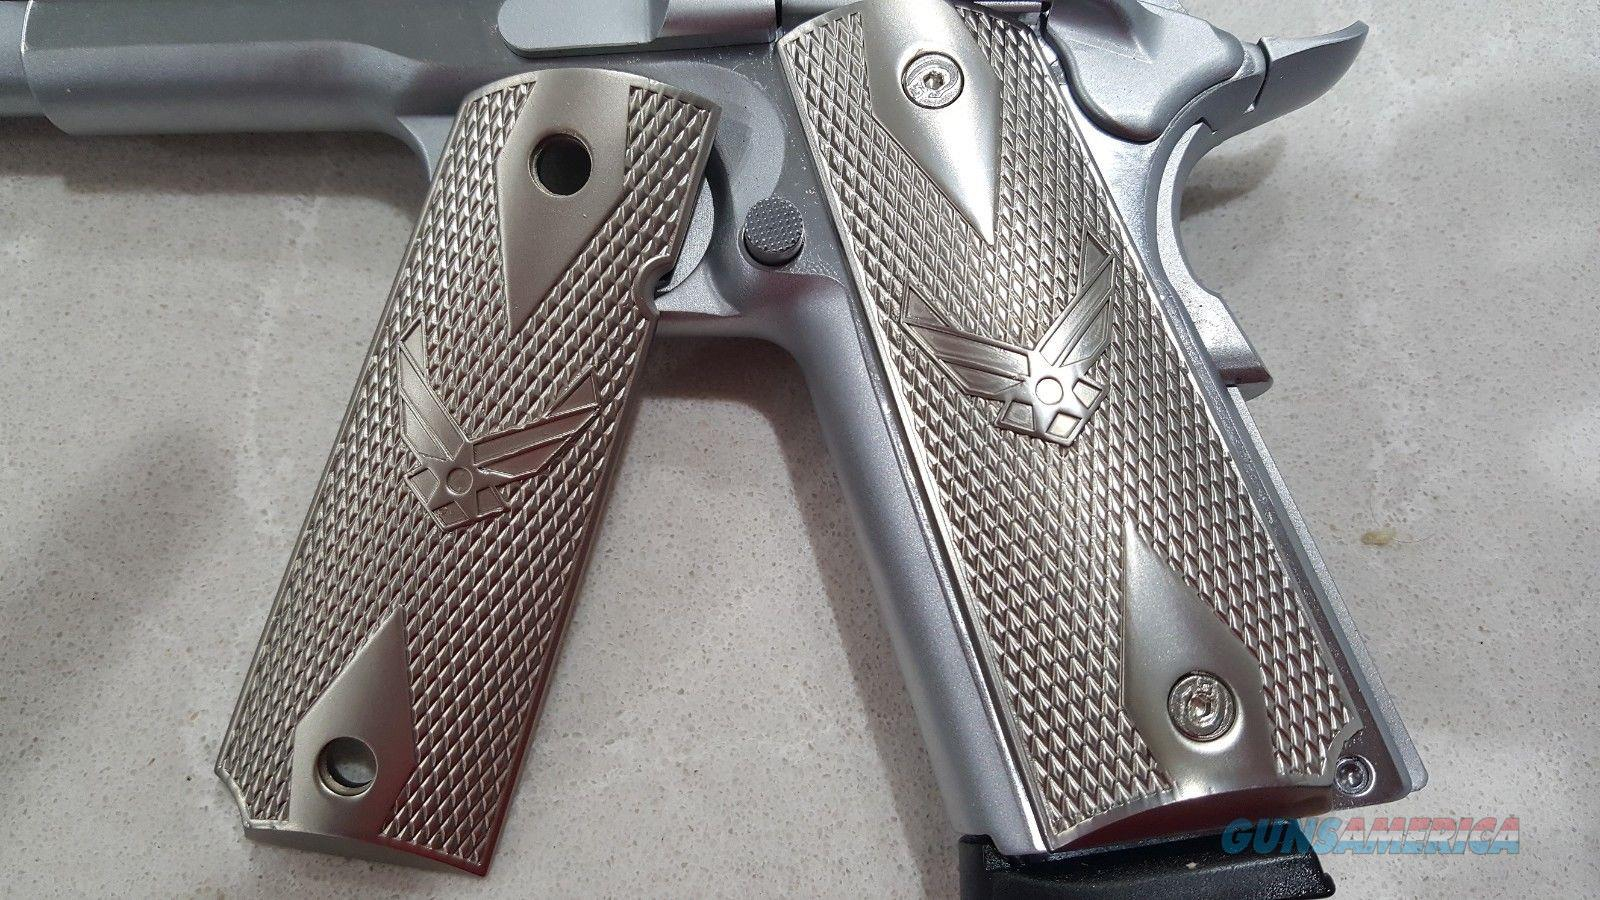 FIT ALL 1911 COLT US Air Force GRIPS Full Size Brushed Nickel Plated Screws included  Non-Guns > Gun Parts > 1911